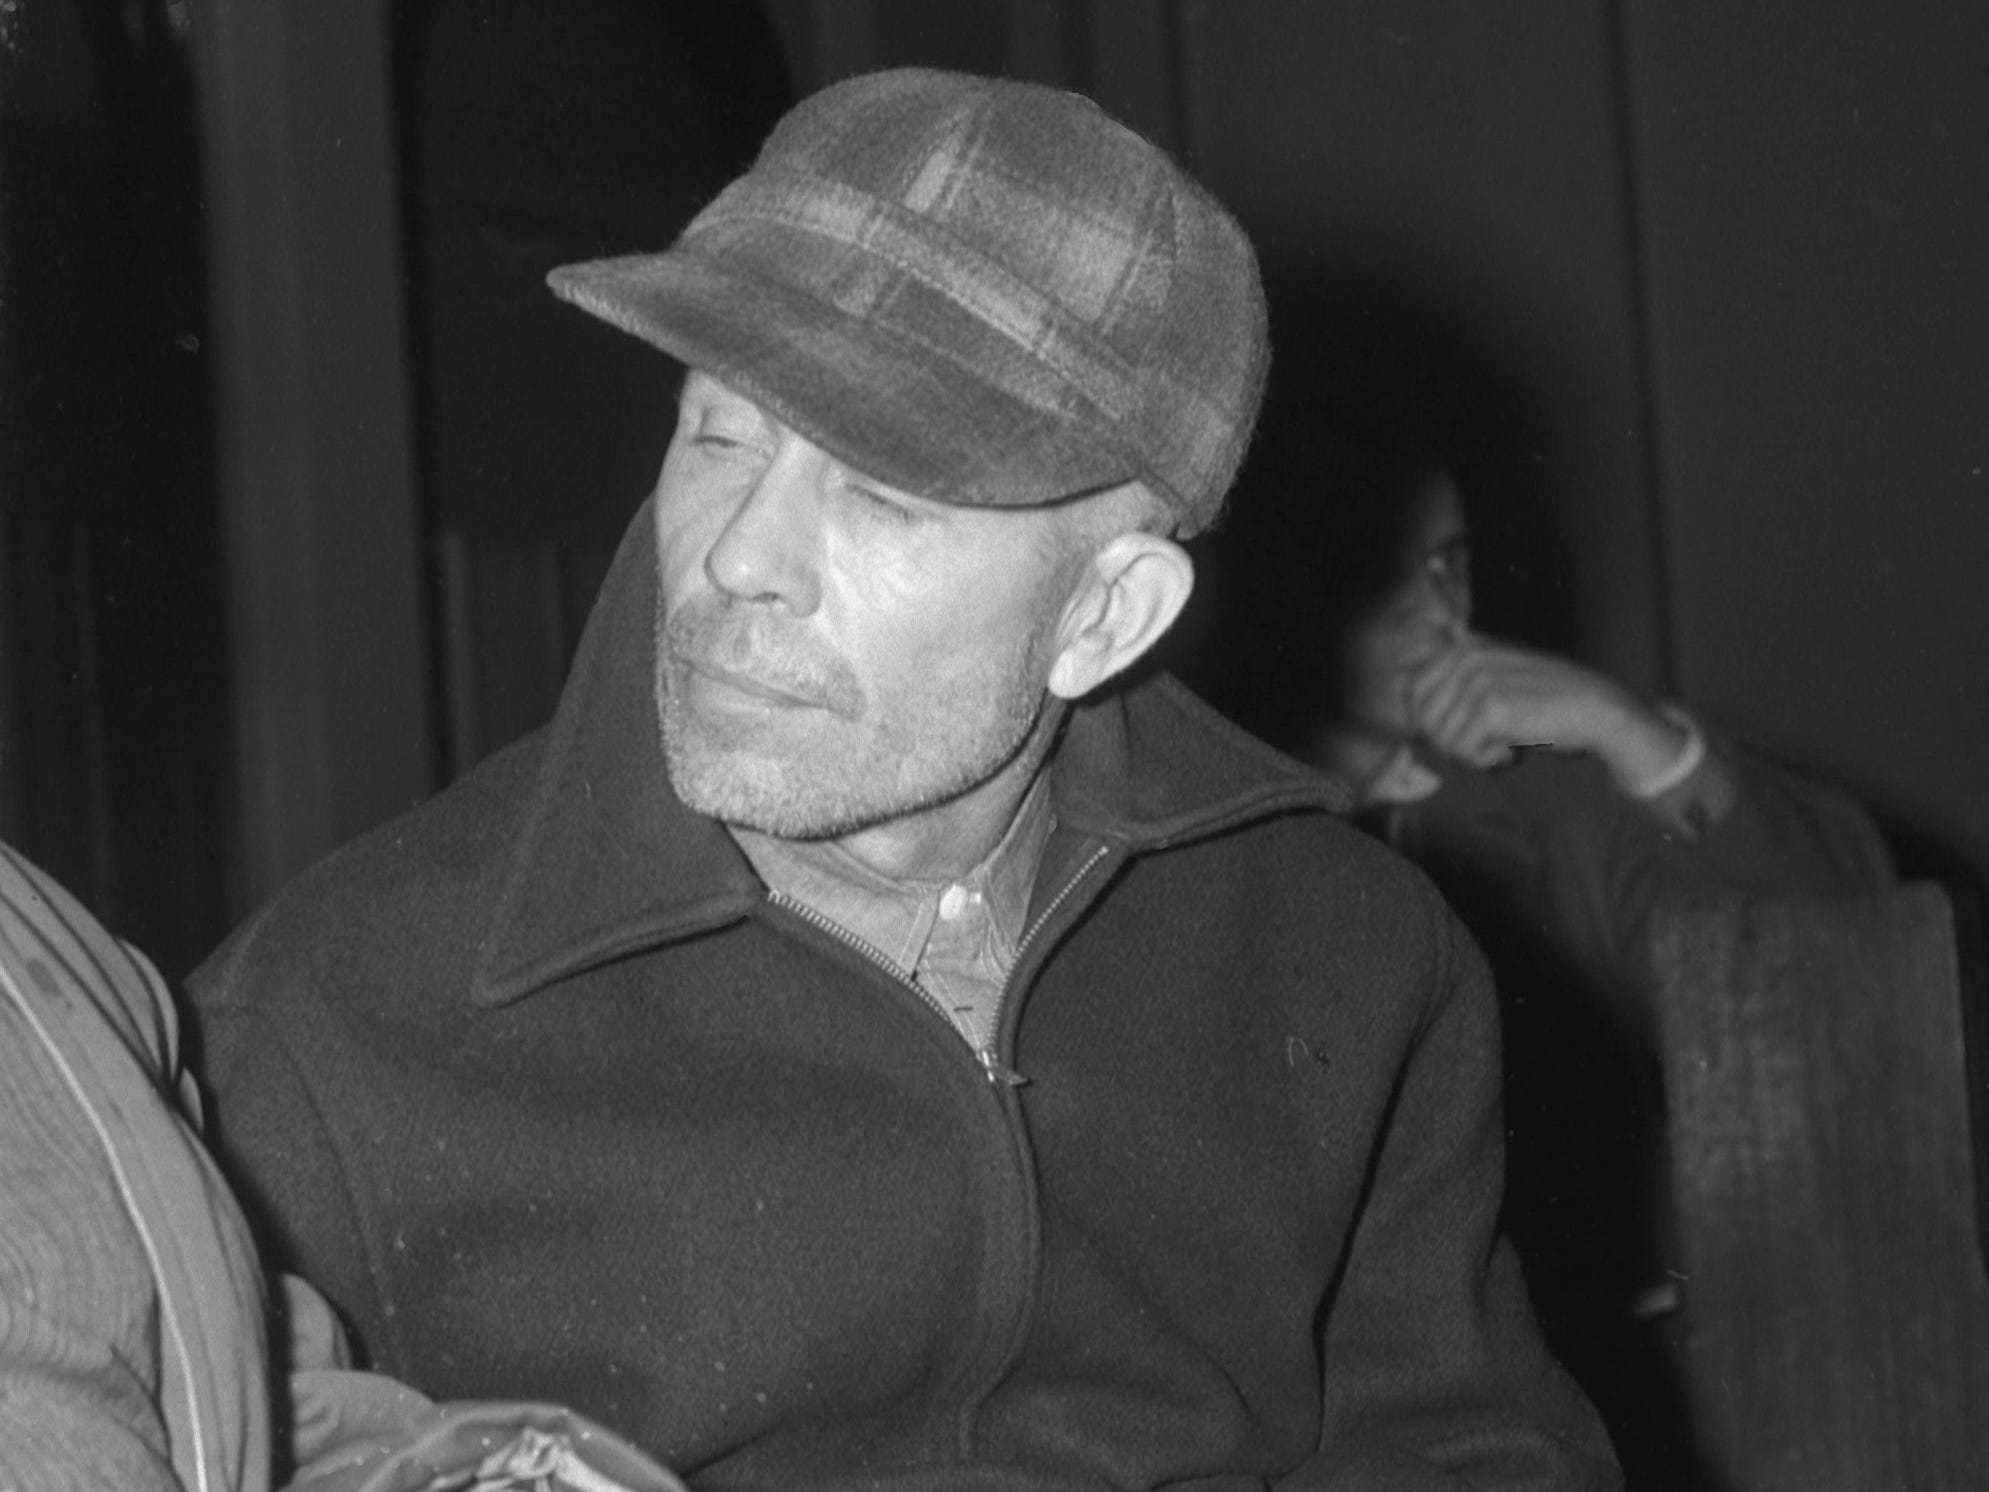 Ed Gein at the Waushara county Jail at Wautoma in 1957.